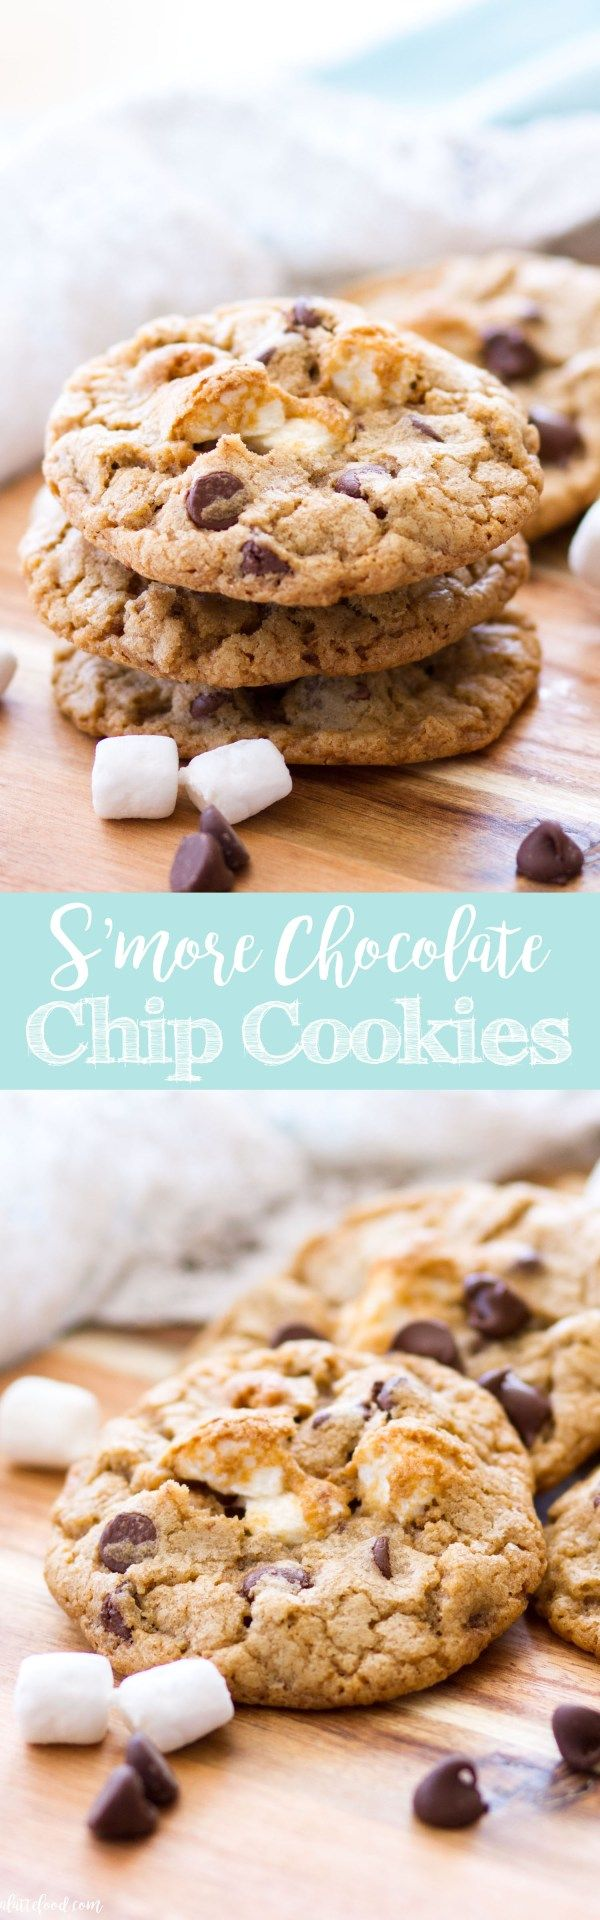 These rich S'more Chocolate Chip Cookies are filled with gooey marshmallows, crushed graham crackers, and plenty of chocolate chips!